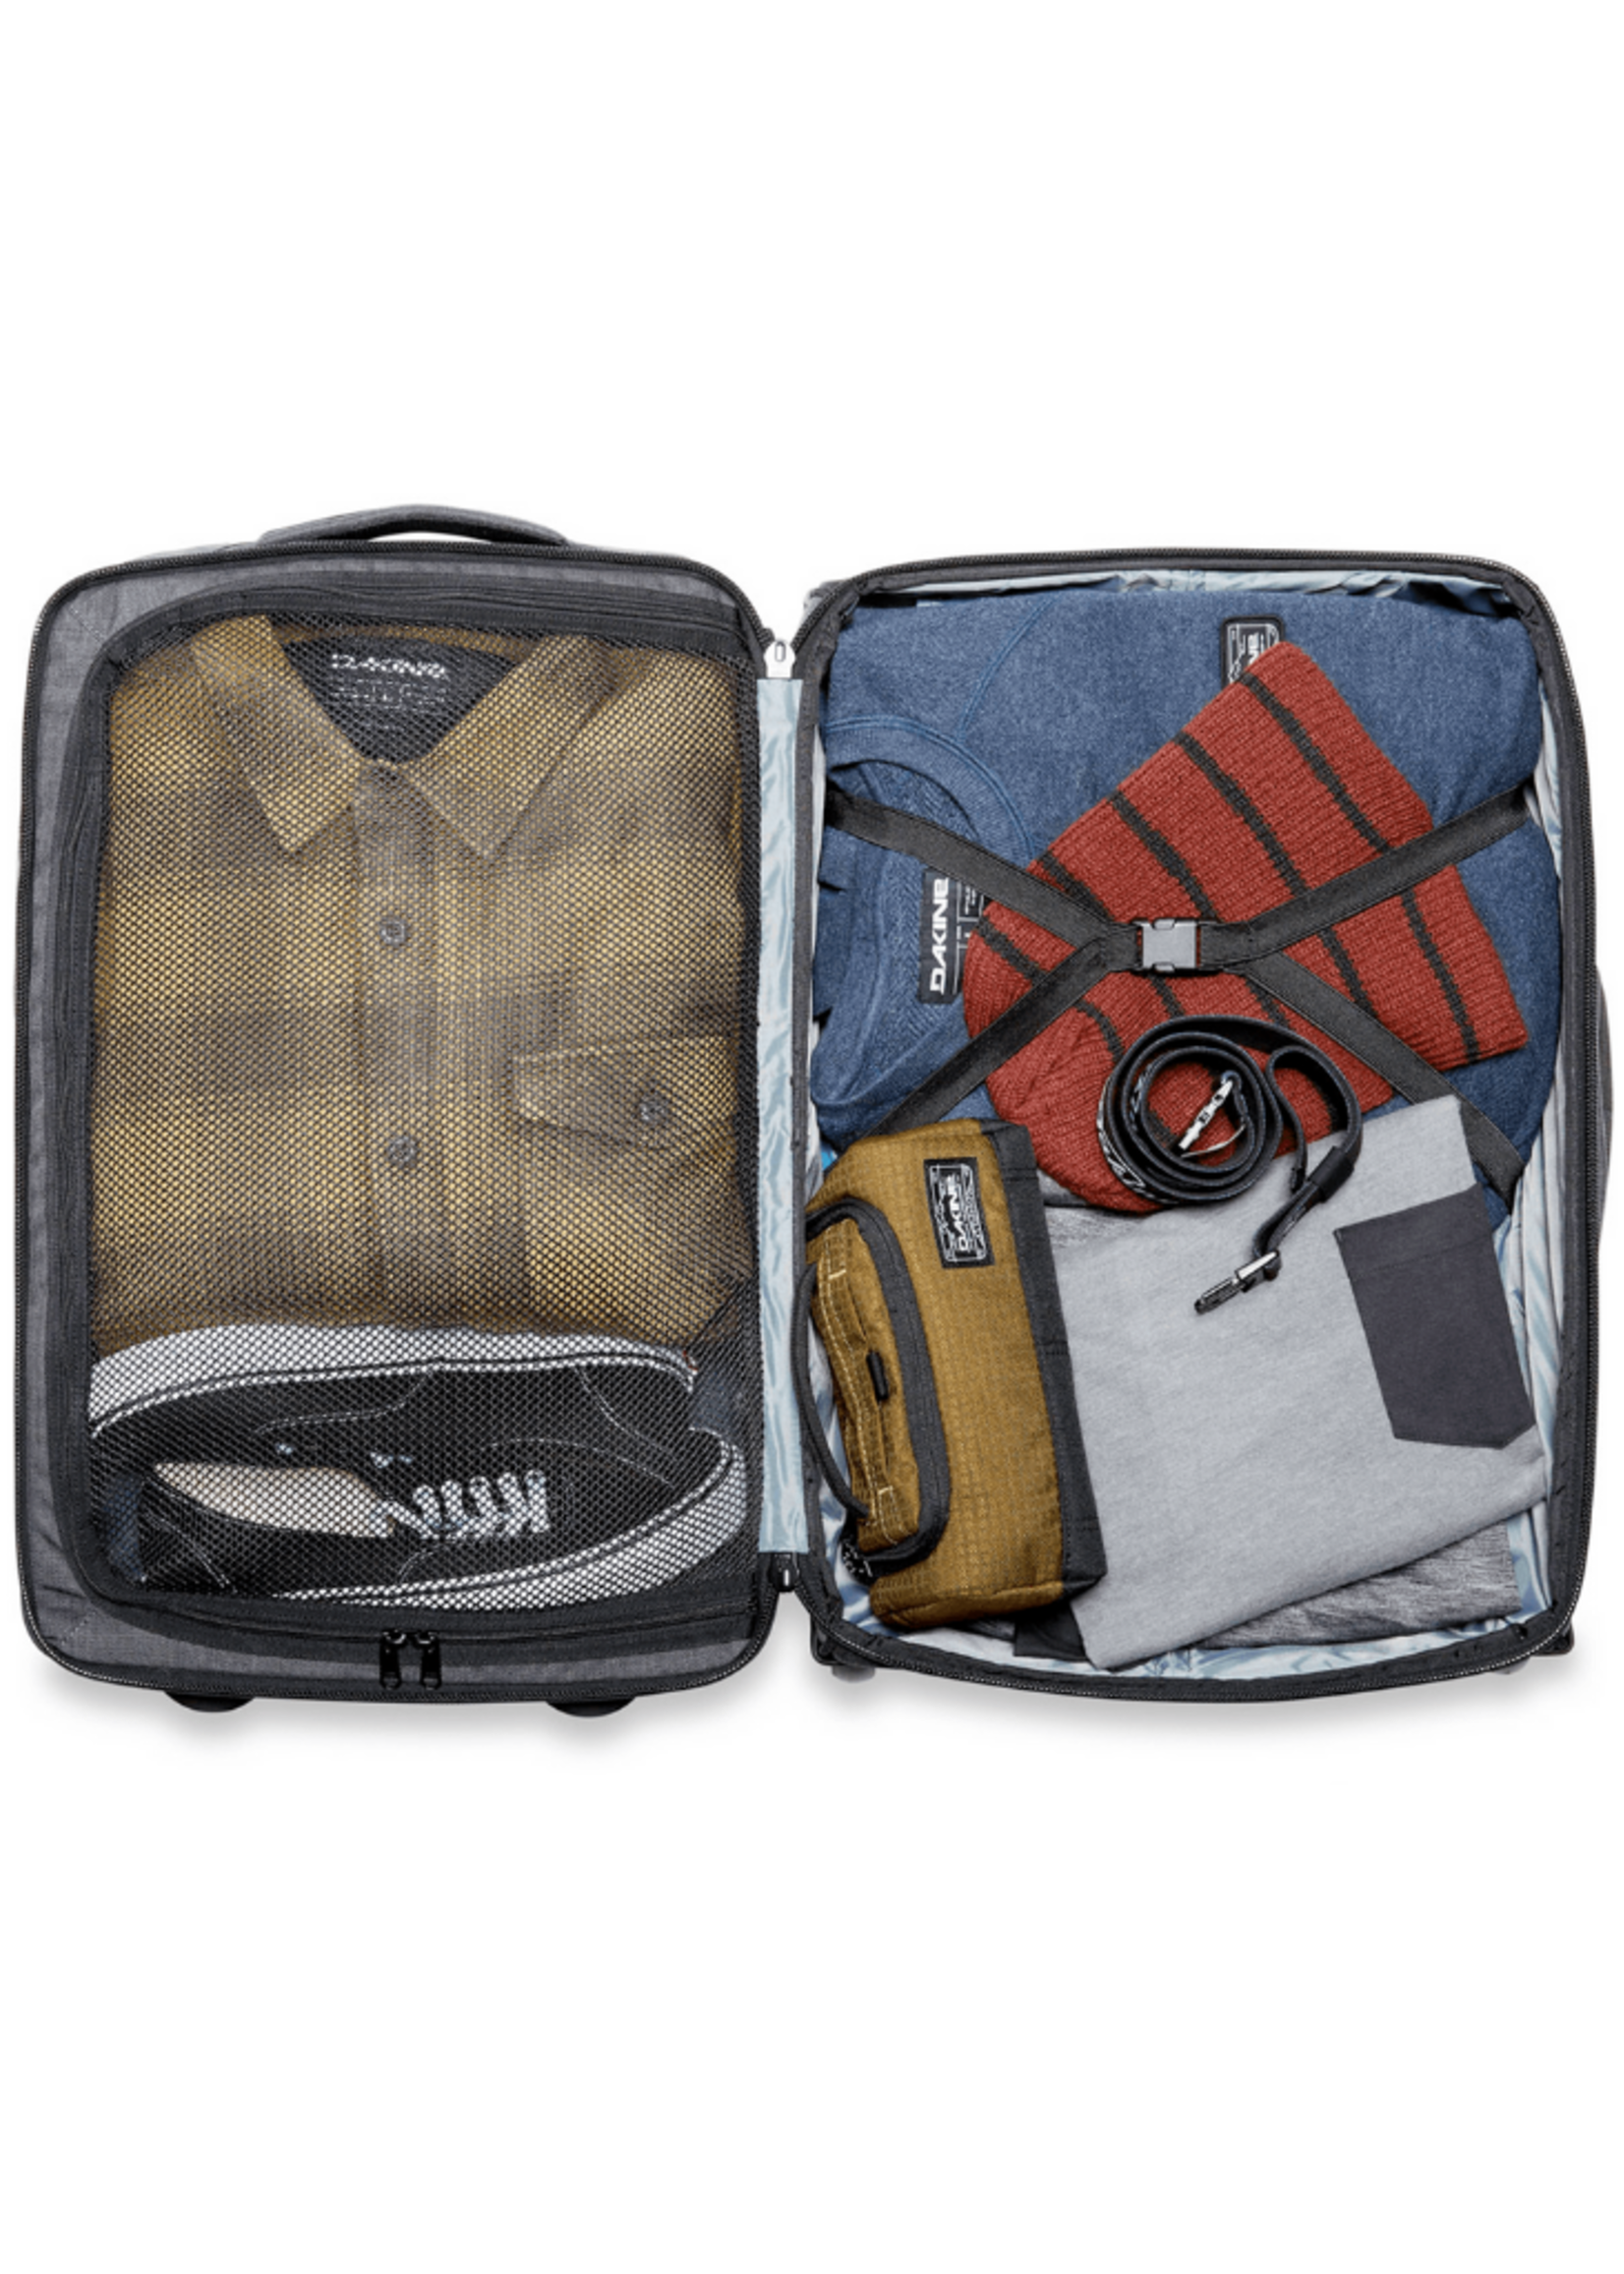 F19 DAKINE CARRY ON ROLLER